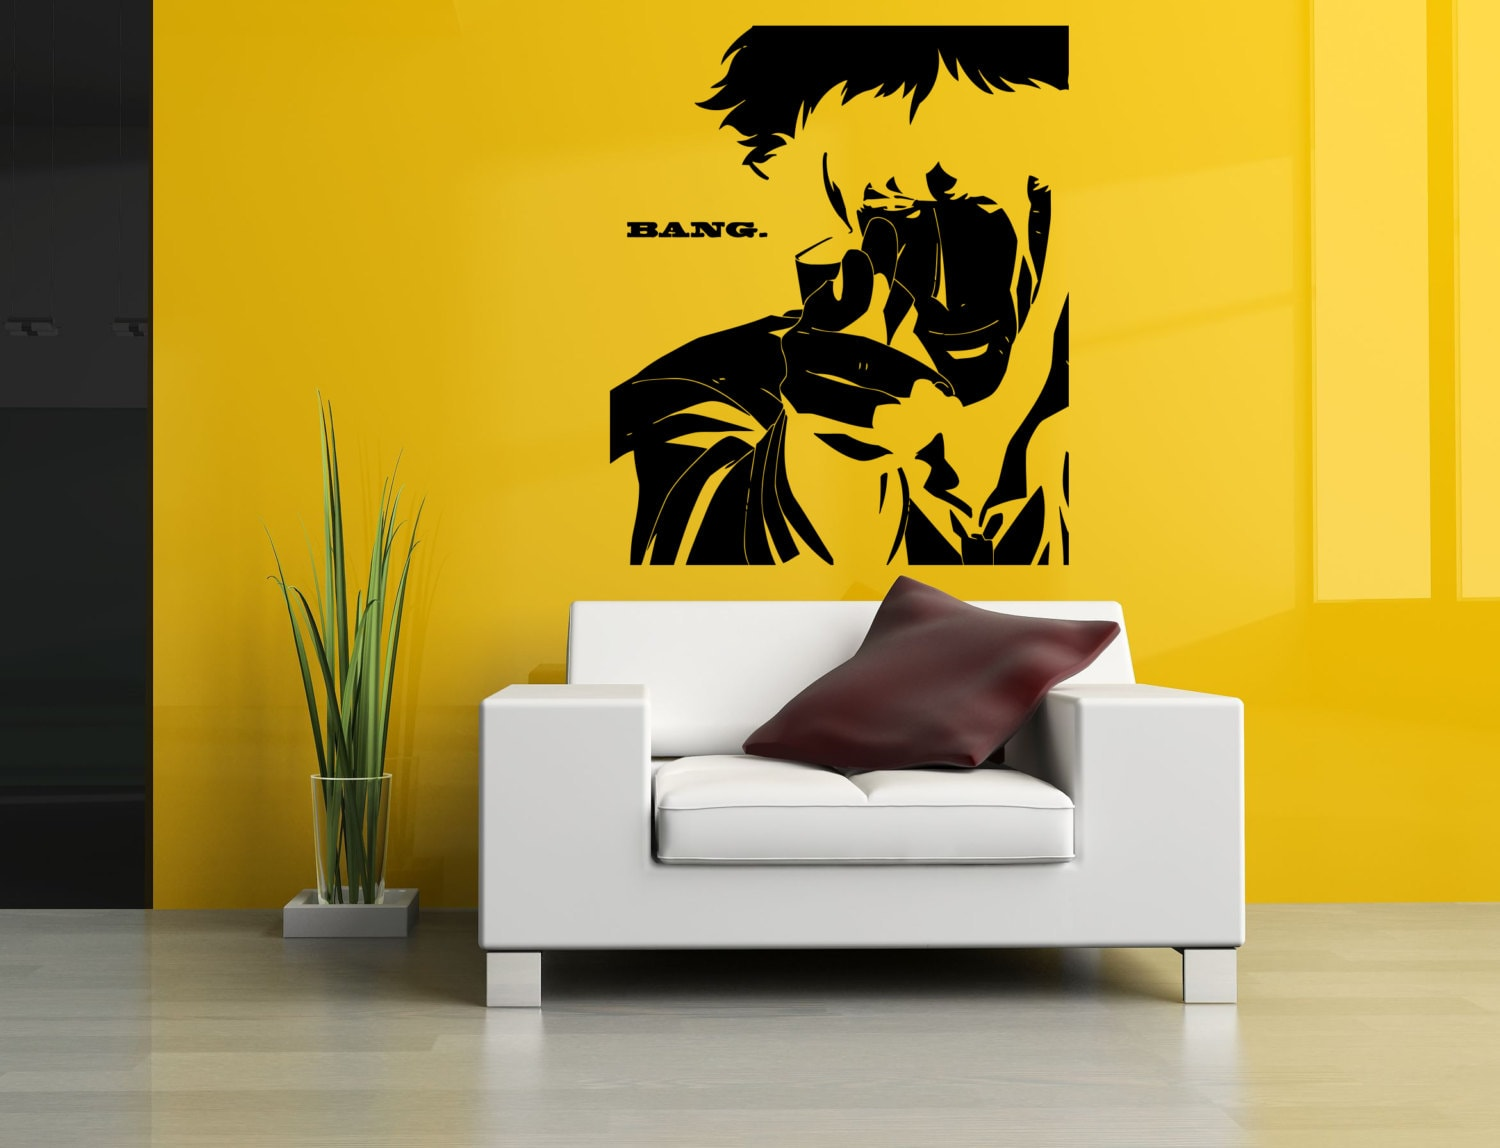 Removable Vinyl Sticker Mural Decal Wall Decor Poster Art See